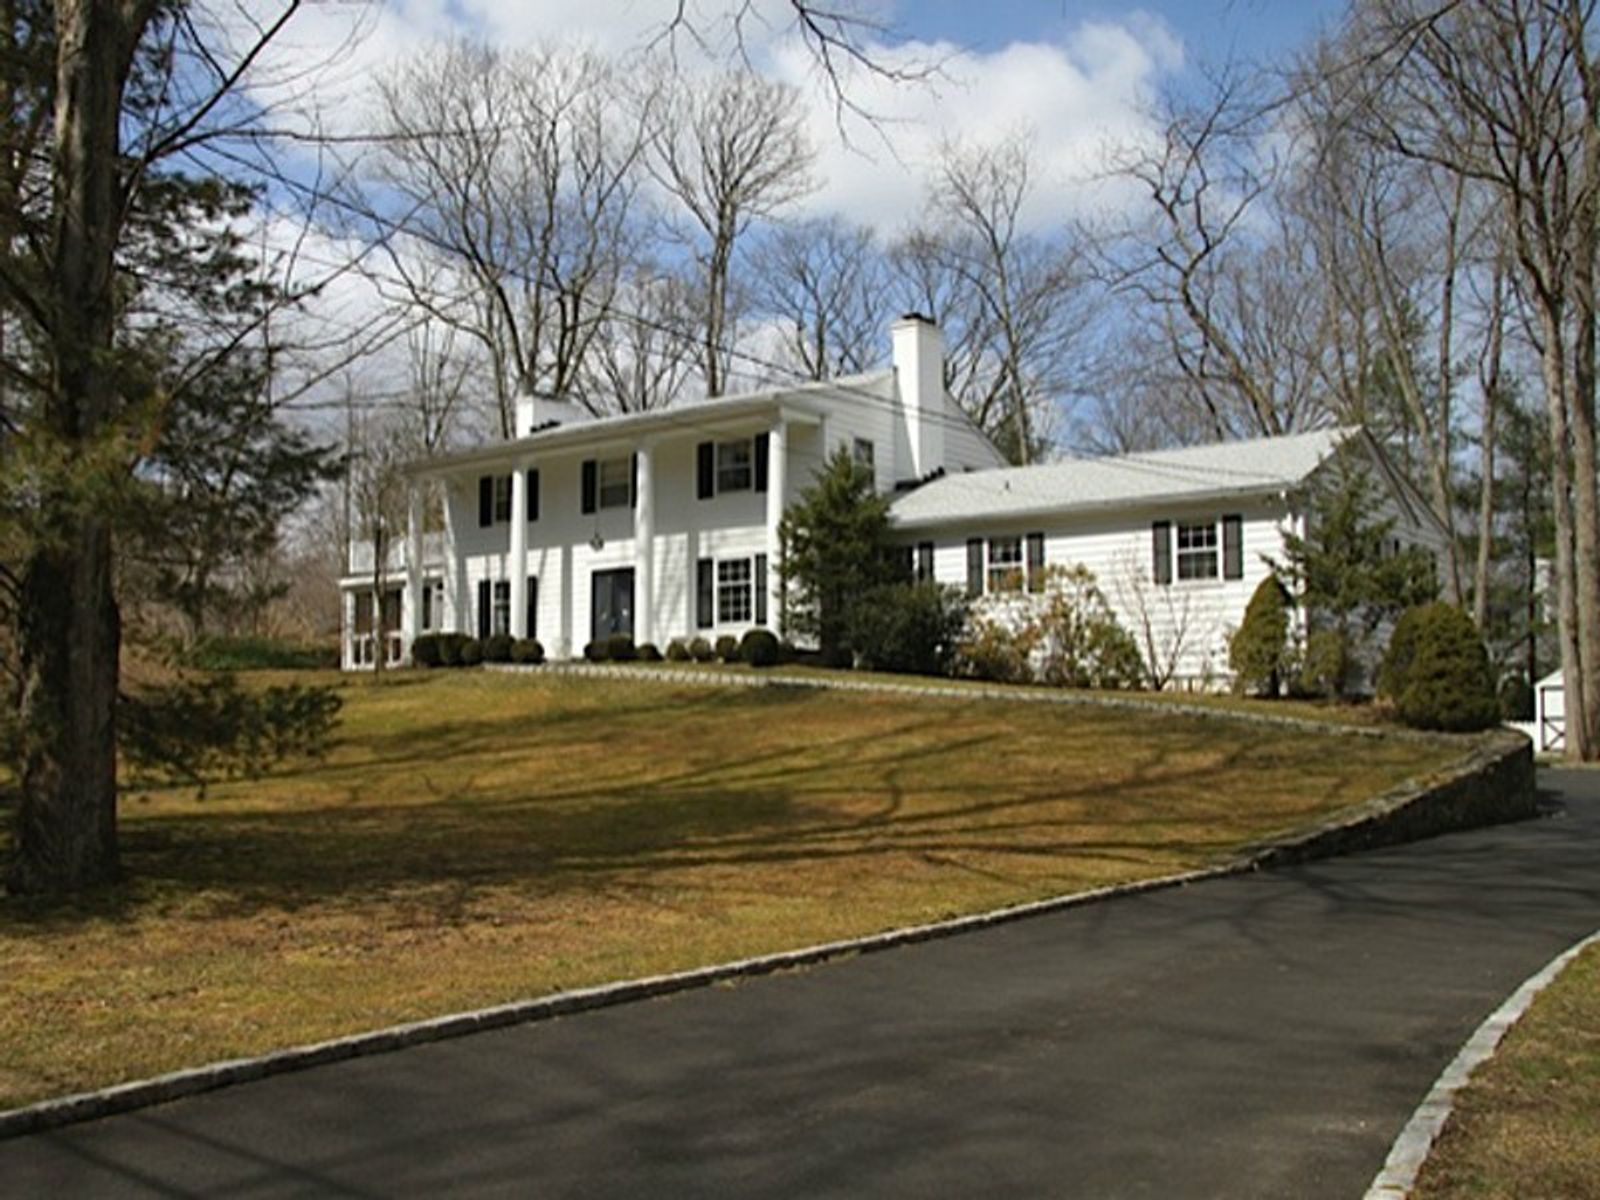 Mid-Country Greenwich, Greenwich CT Single Family Home - Greenwich Real Estate